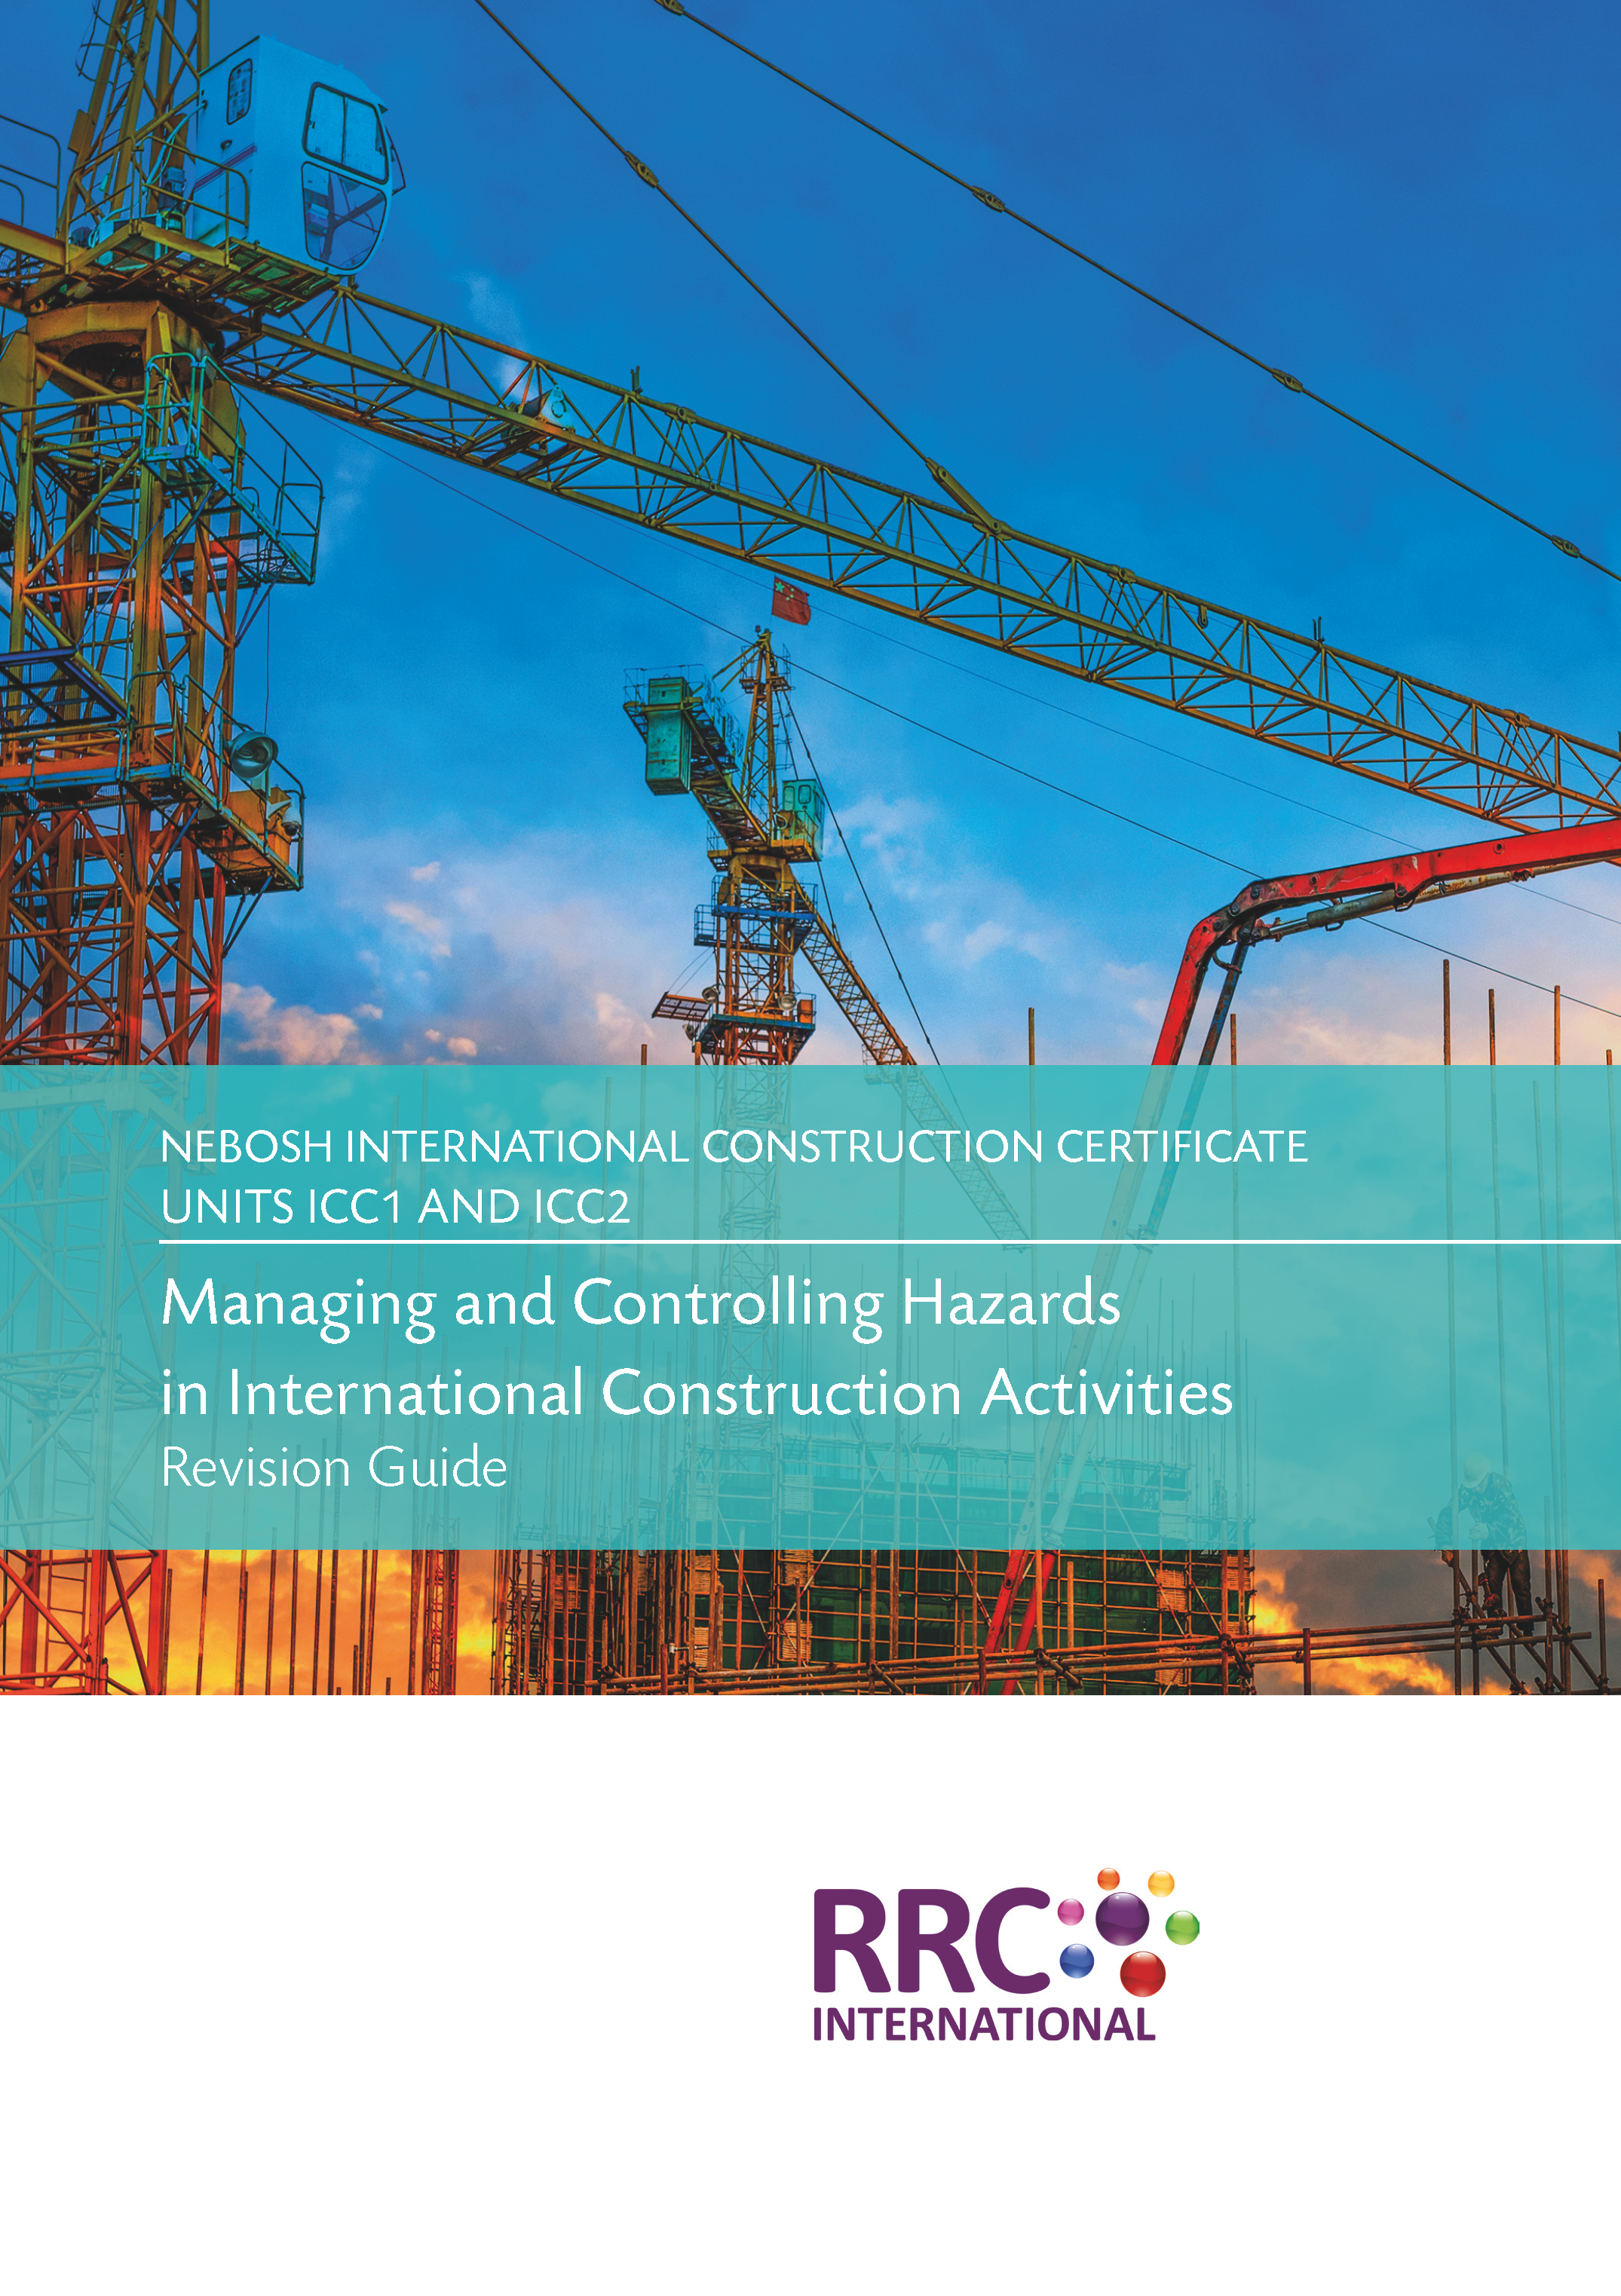 NEBOSH International Construction Certificate Book Image